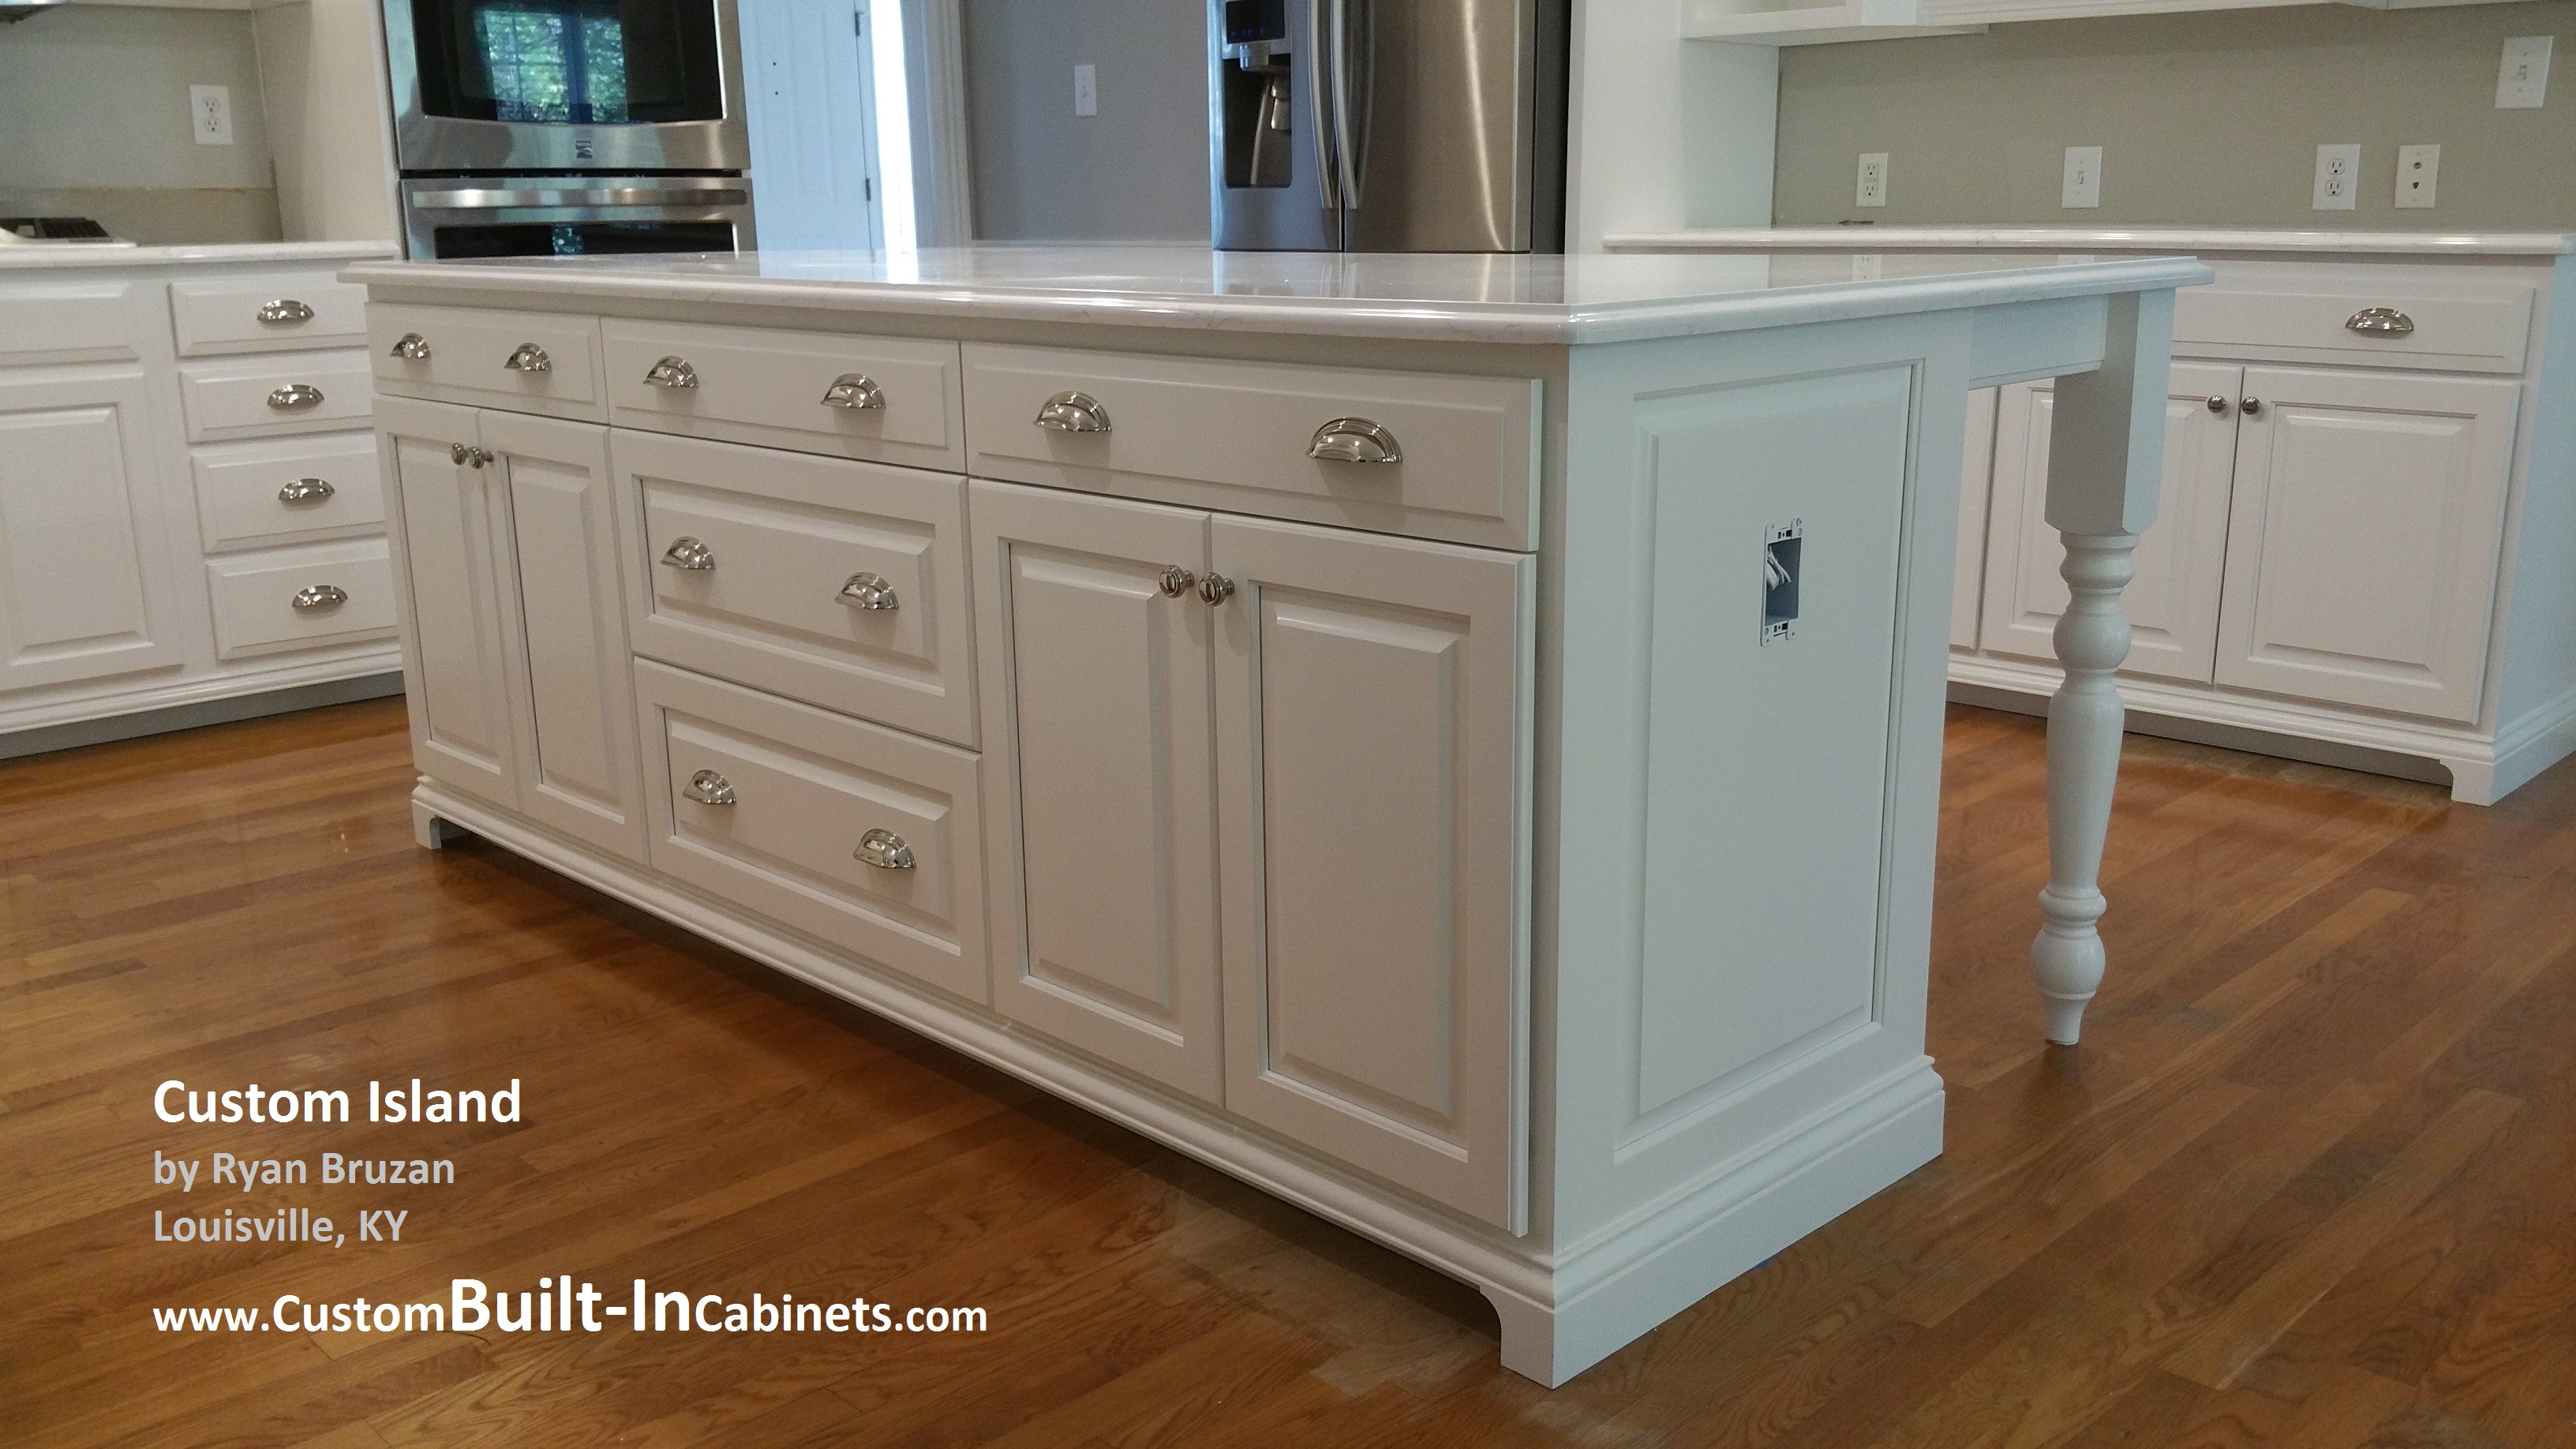 Kitchen Cabinet Repairs Custom Built-in Cabinet Services Around Louisville, Ky